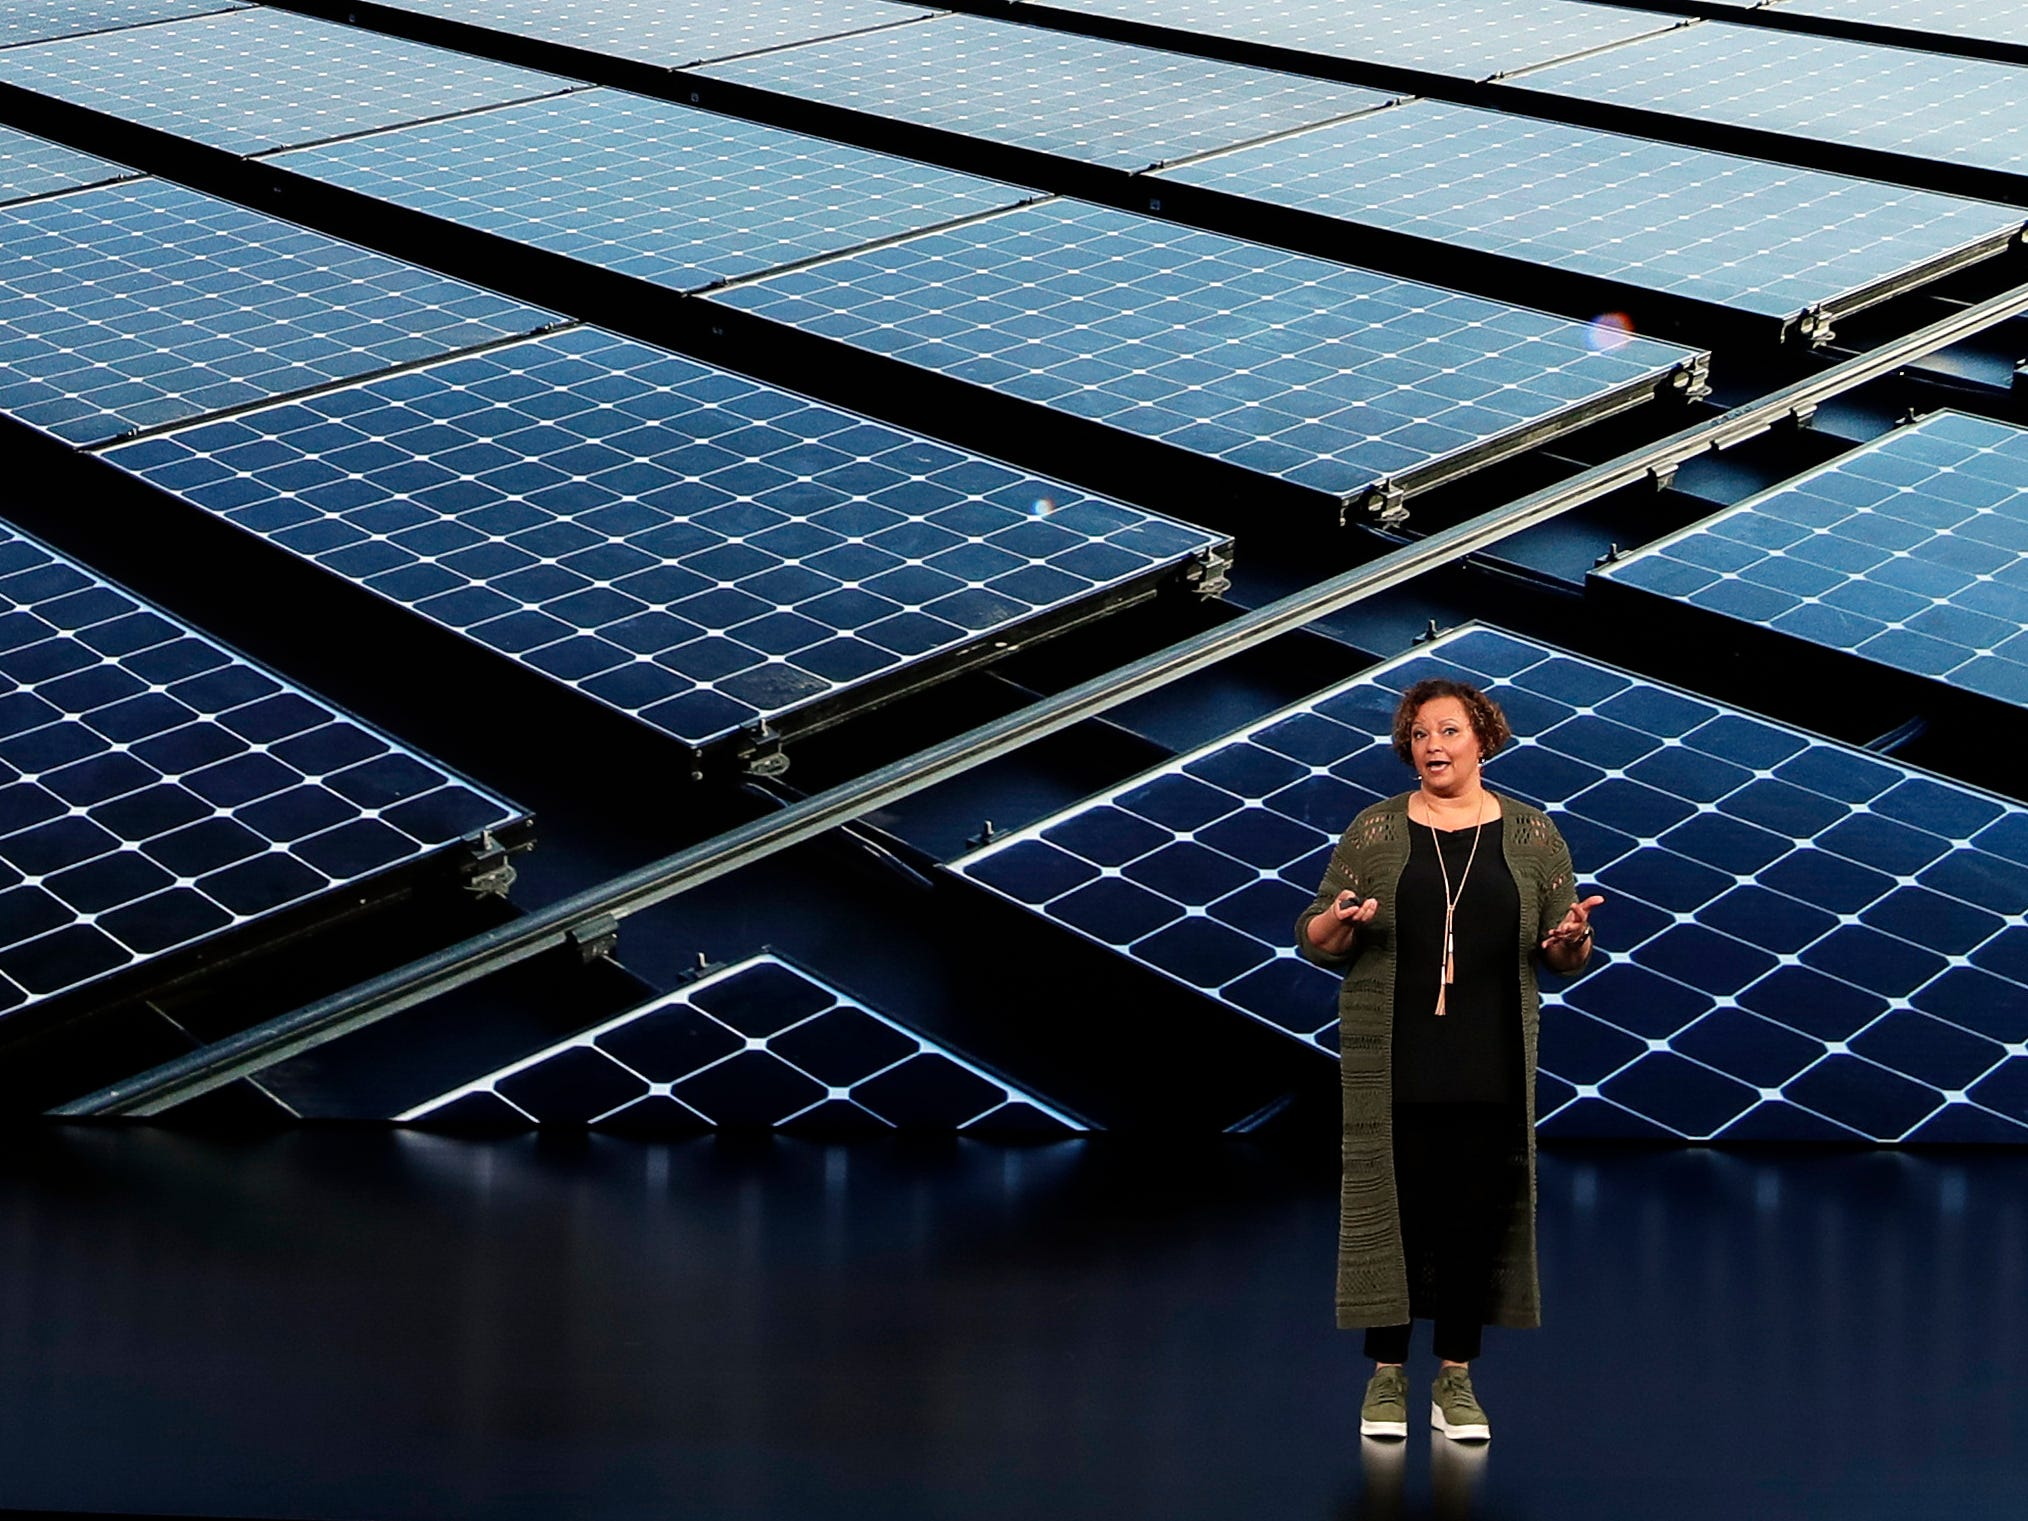 Lisa Jackson, Vice President of Environment, Policy, and Social Initiatives speaks at the Steve Jobs Theater during an event to announce new products Wednesday, Sept. 12, 2018, in Cupertino, Calif.